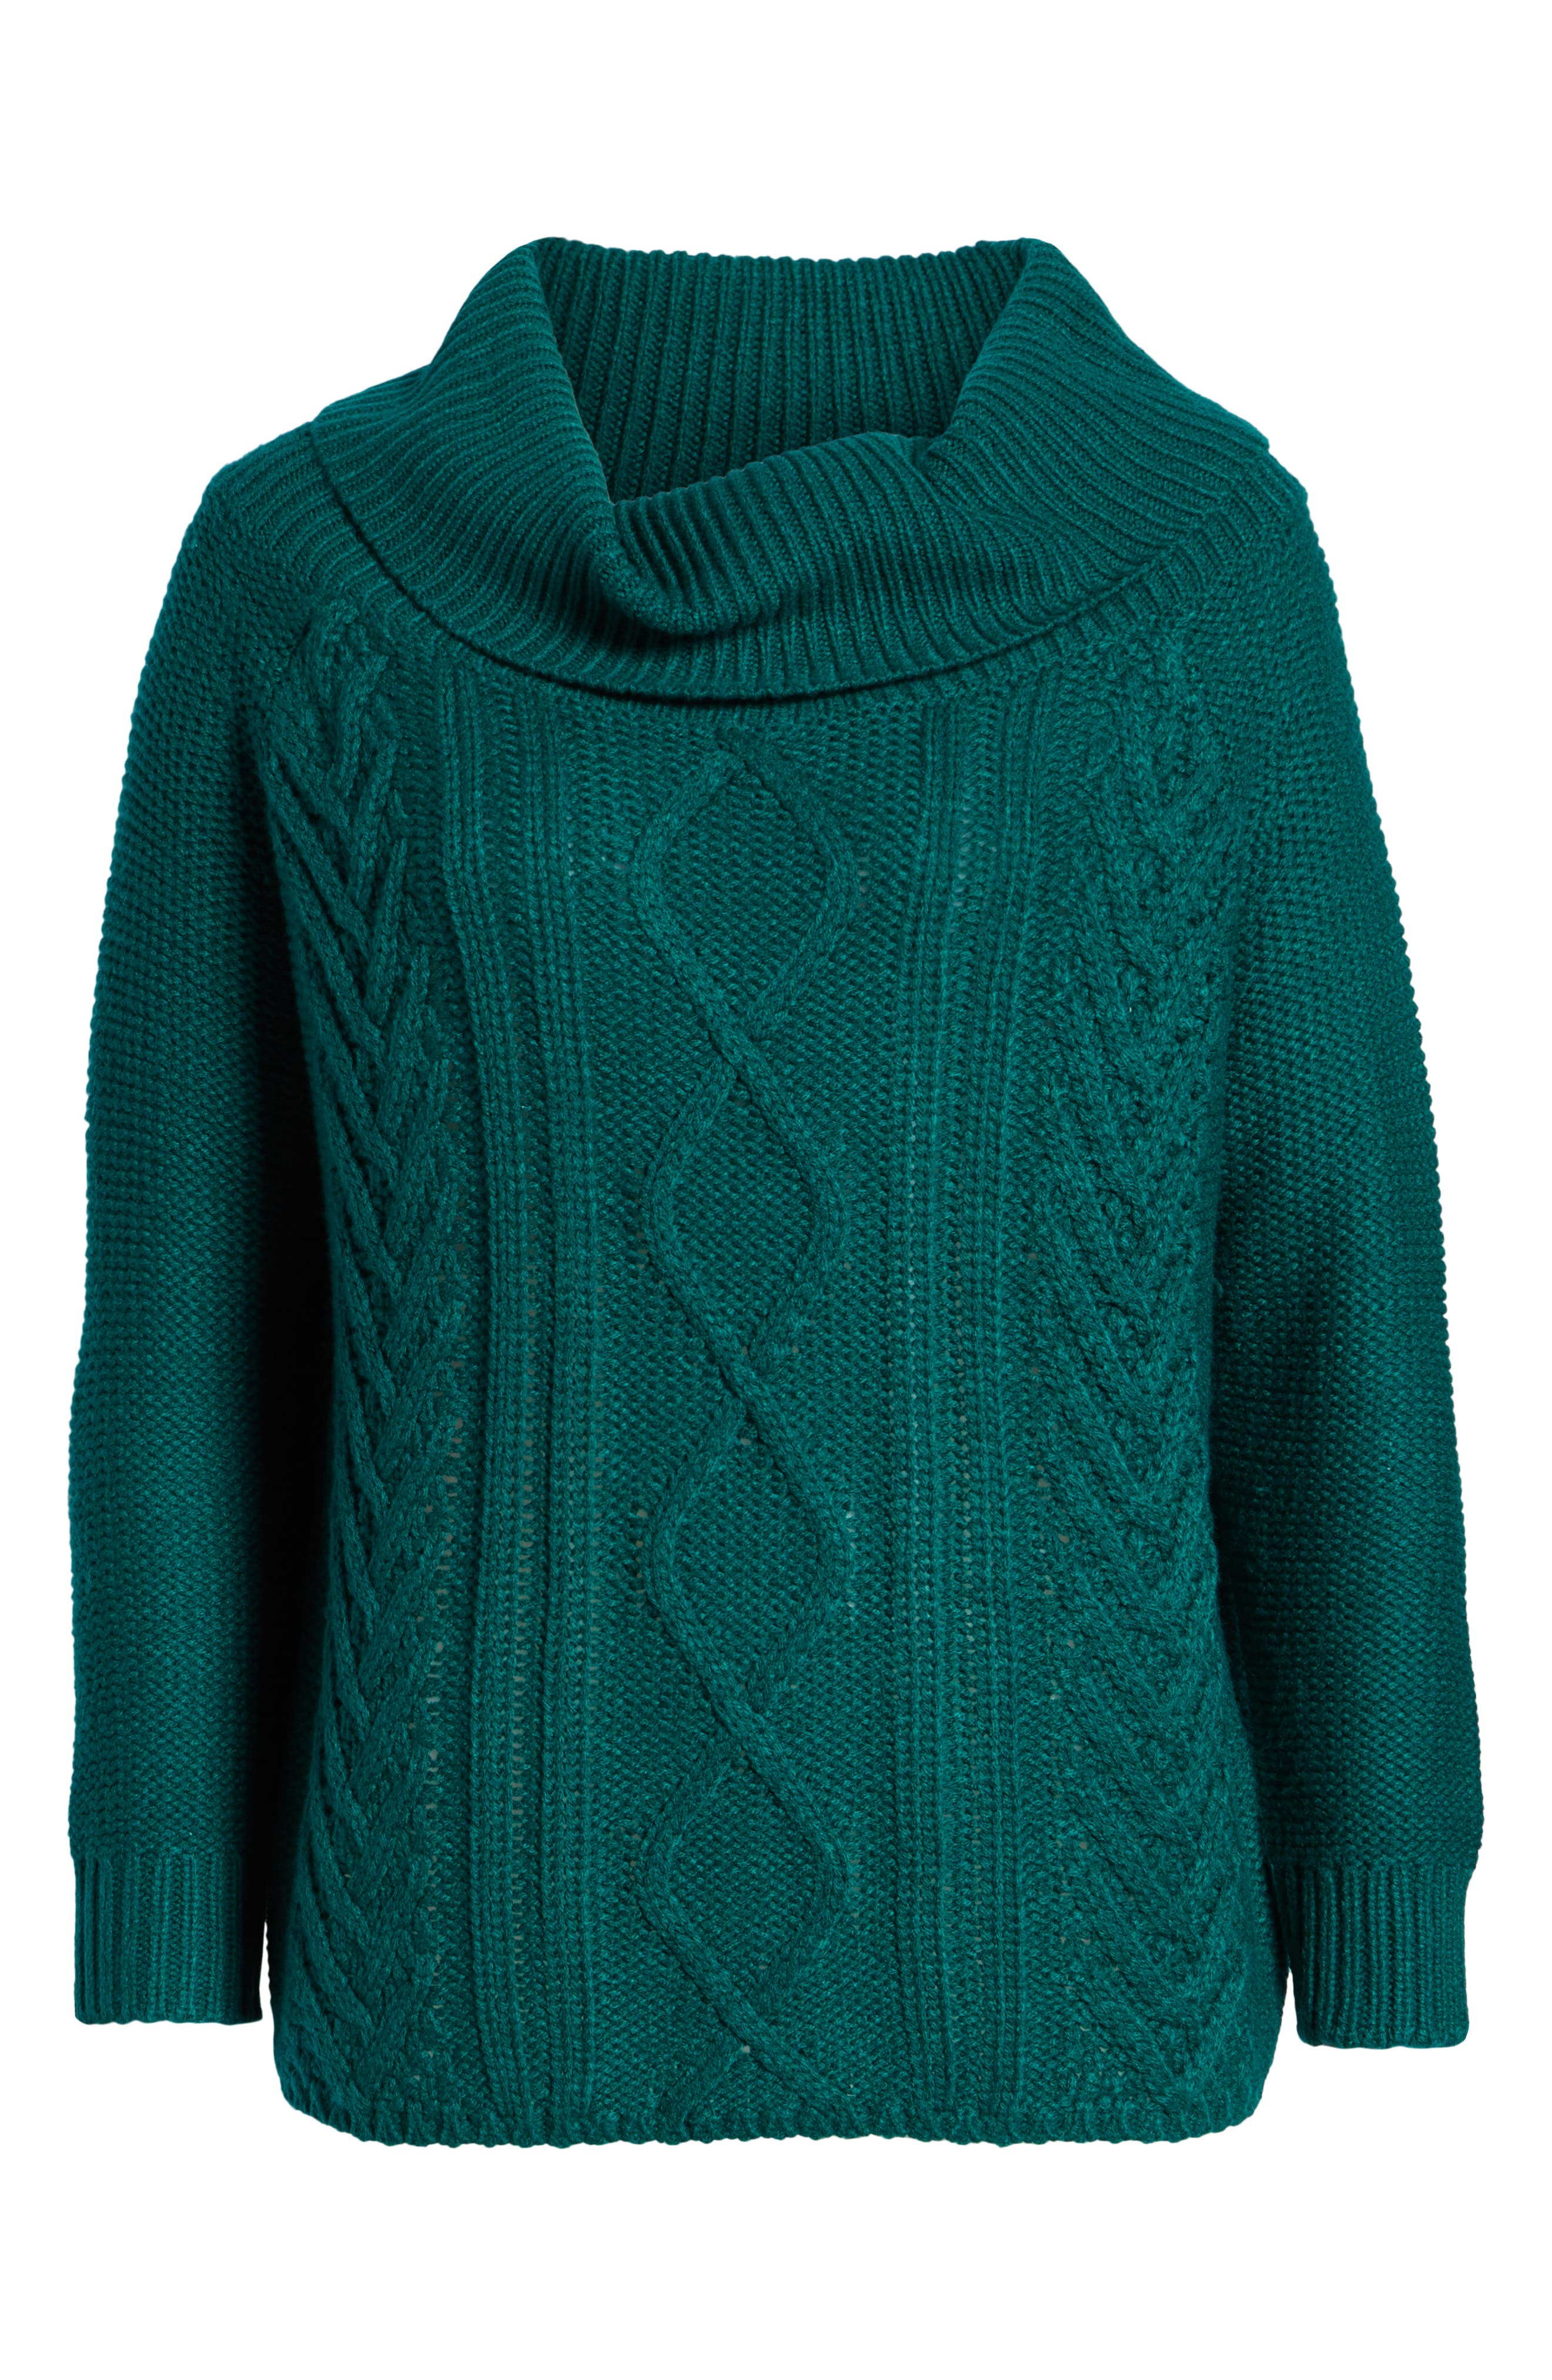 Off Shore Cable Knit Sweater,                             Alternate thumbnail 7, color,                             Deep Lagoon